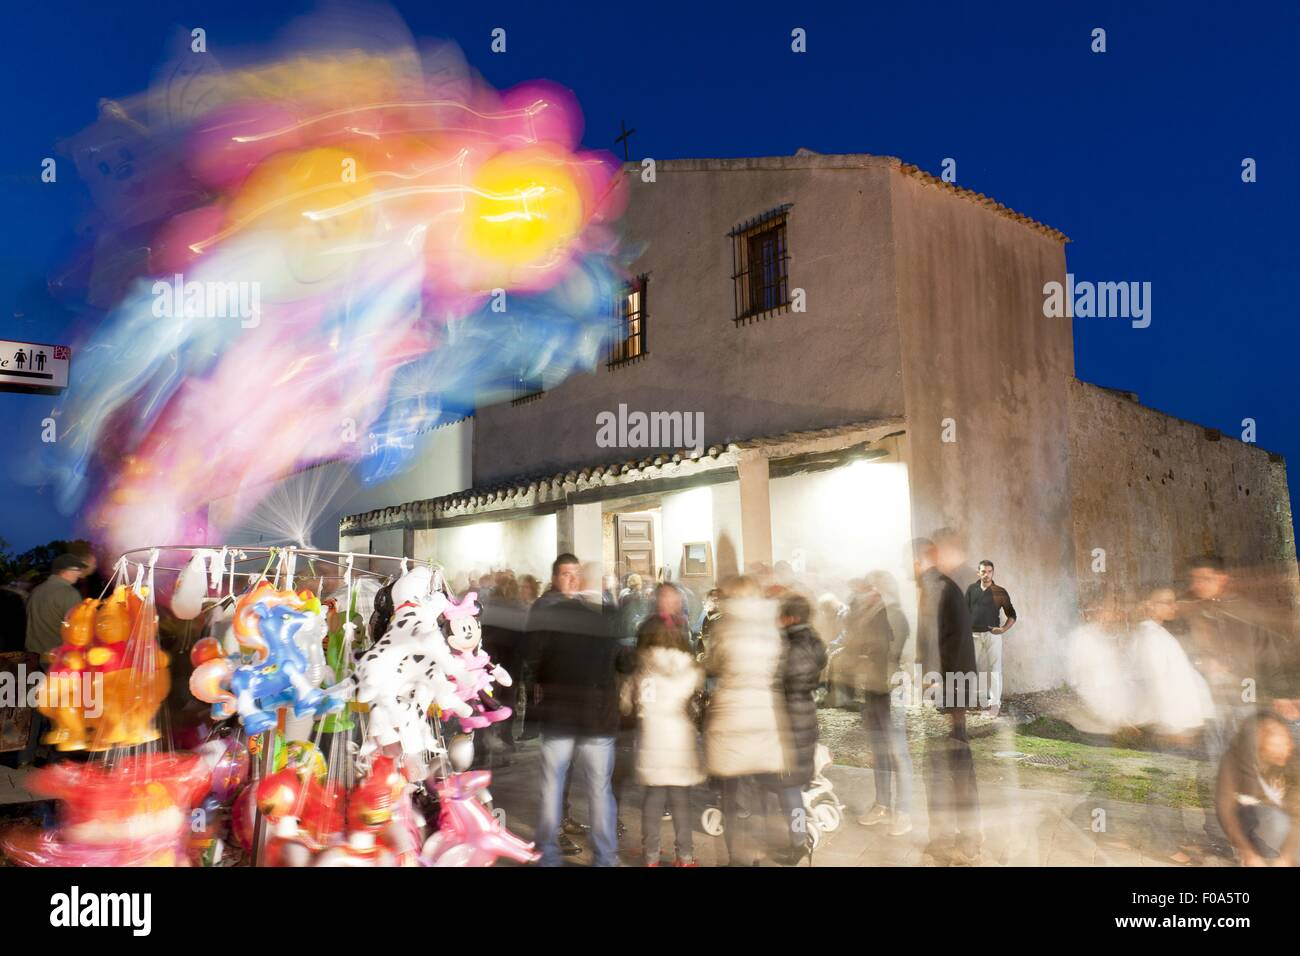 People at Sant'Efisio Church at blue hour, Nora, Cagliari, Sardinia, Italy, blurred motion - Stock Image